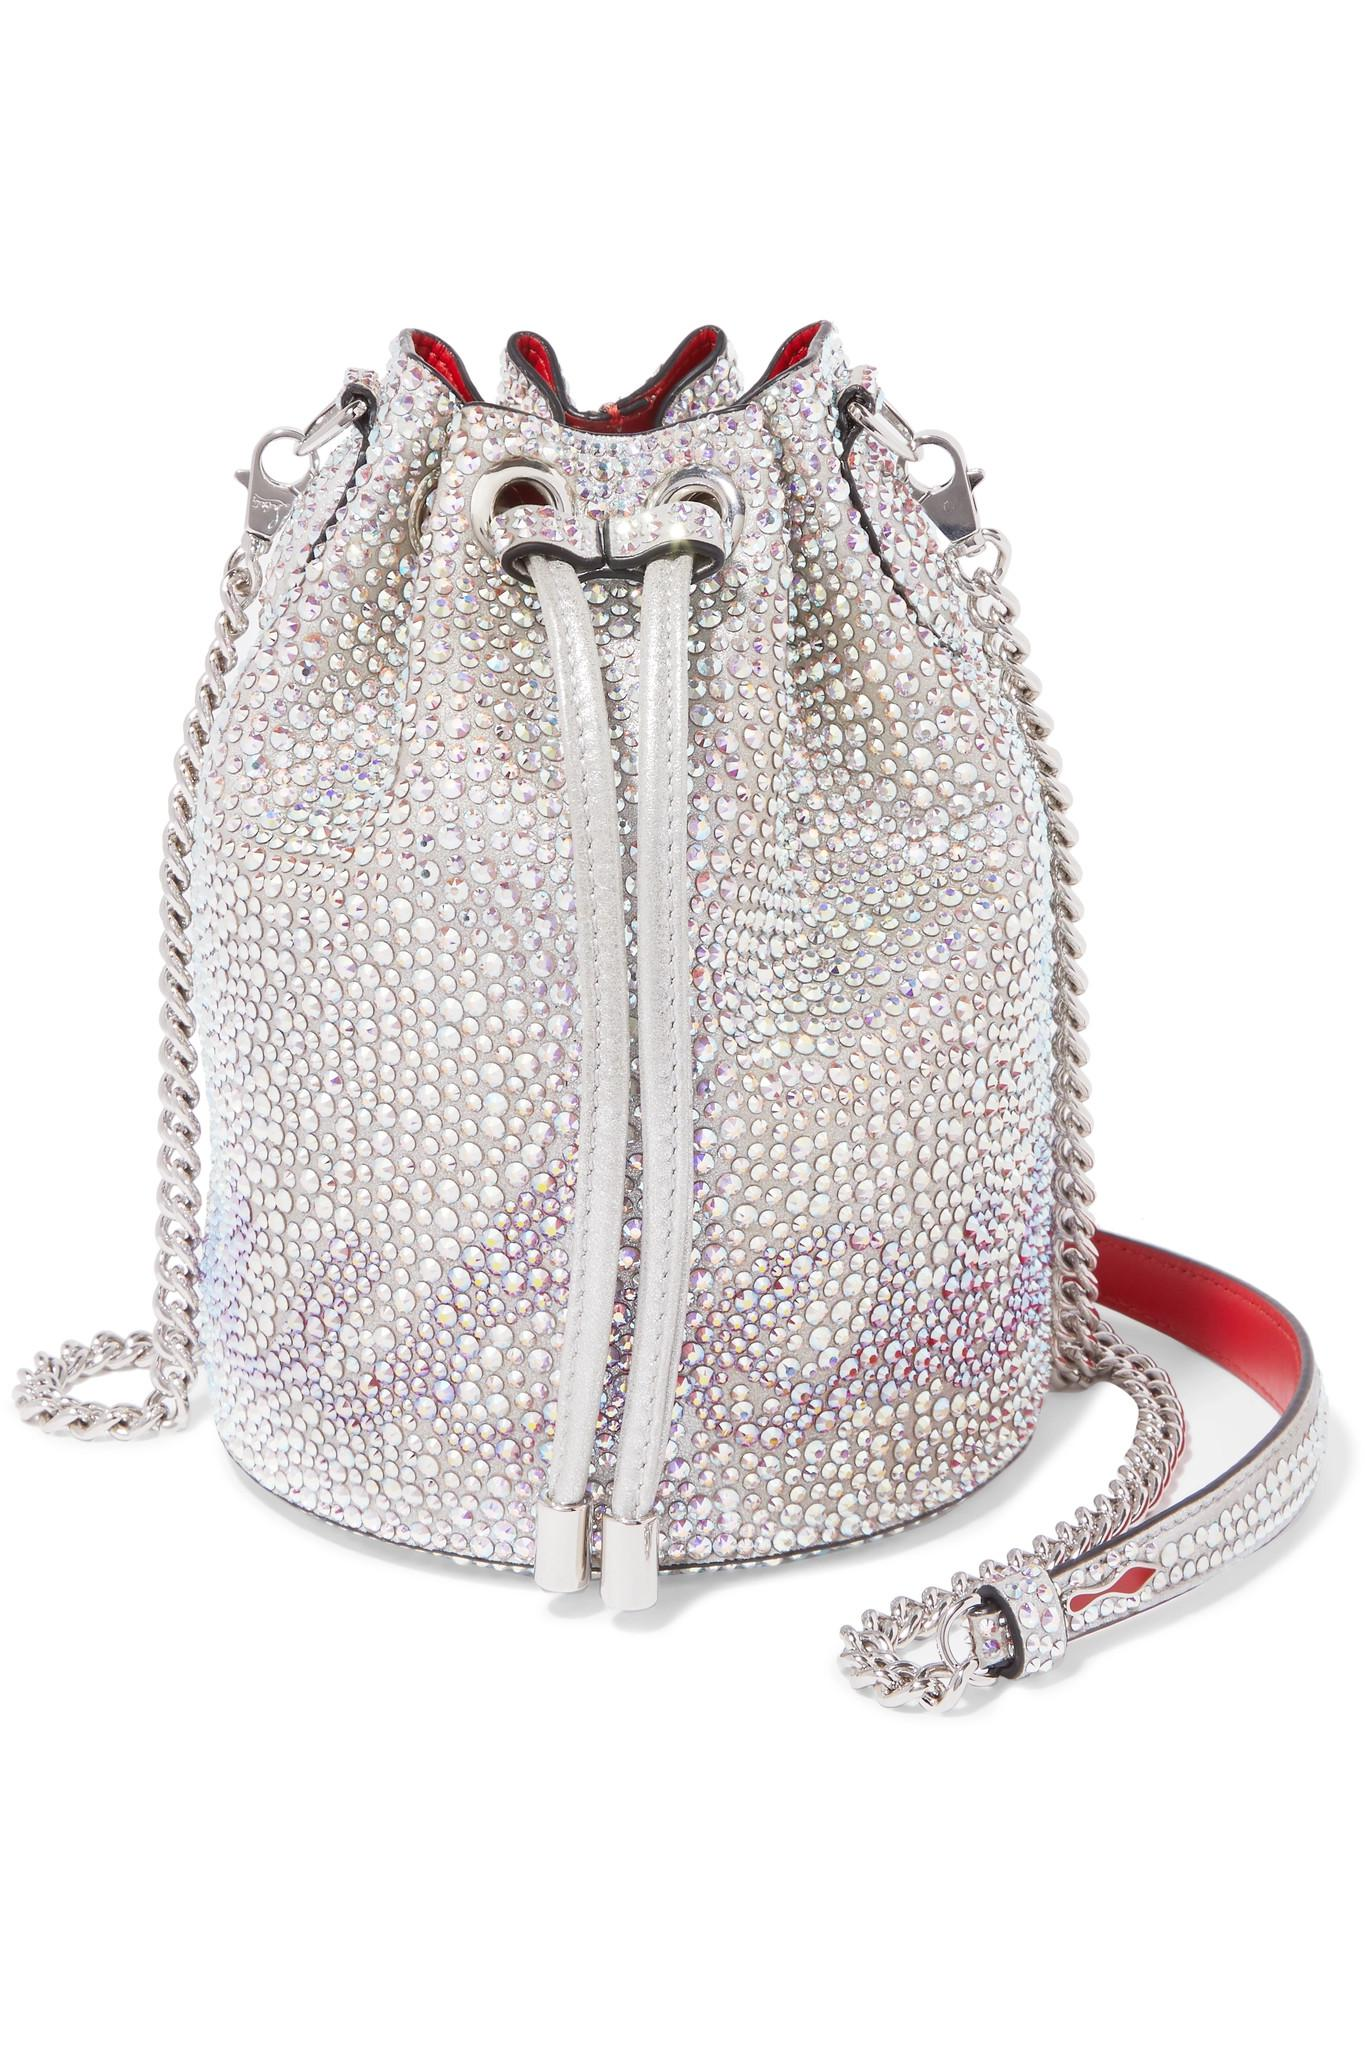 d00c4961038 Christian Louboutin. Women s Metallic Marie Jane Crystal-embellished Suede  And Leather Bucket Bag